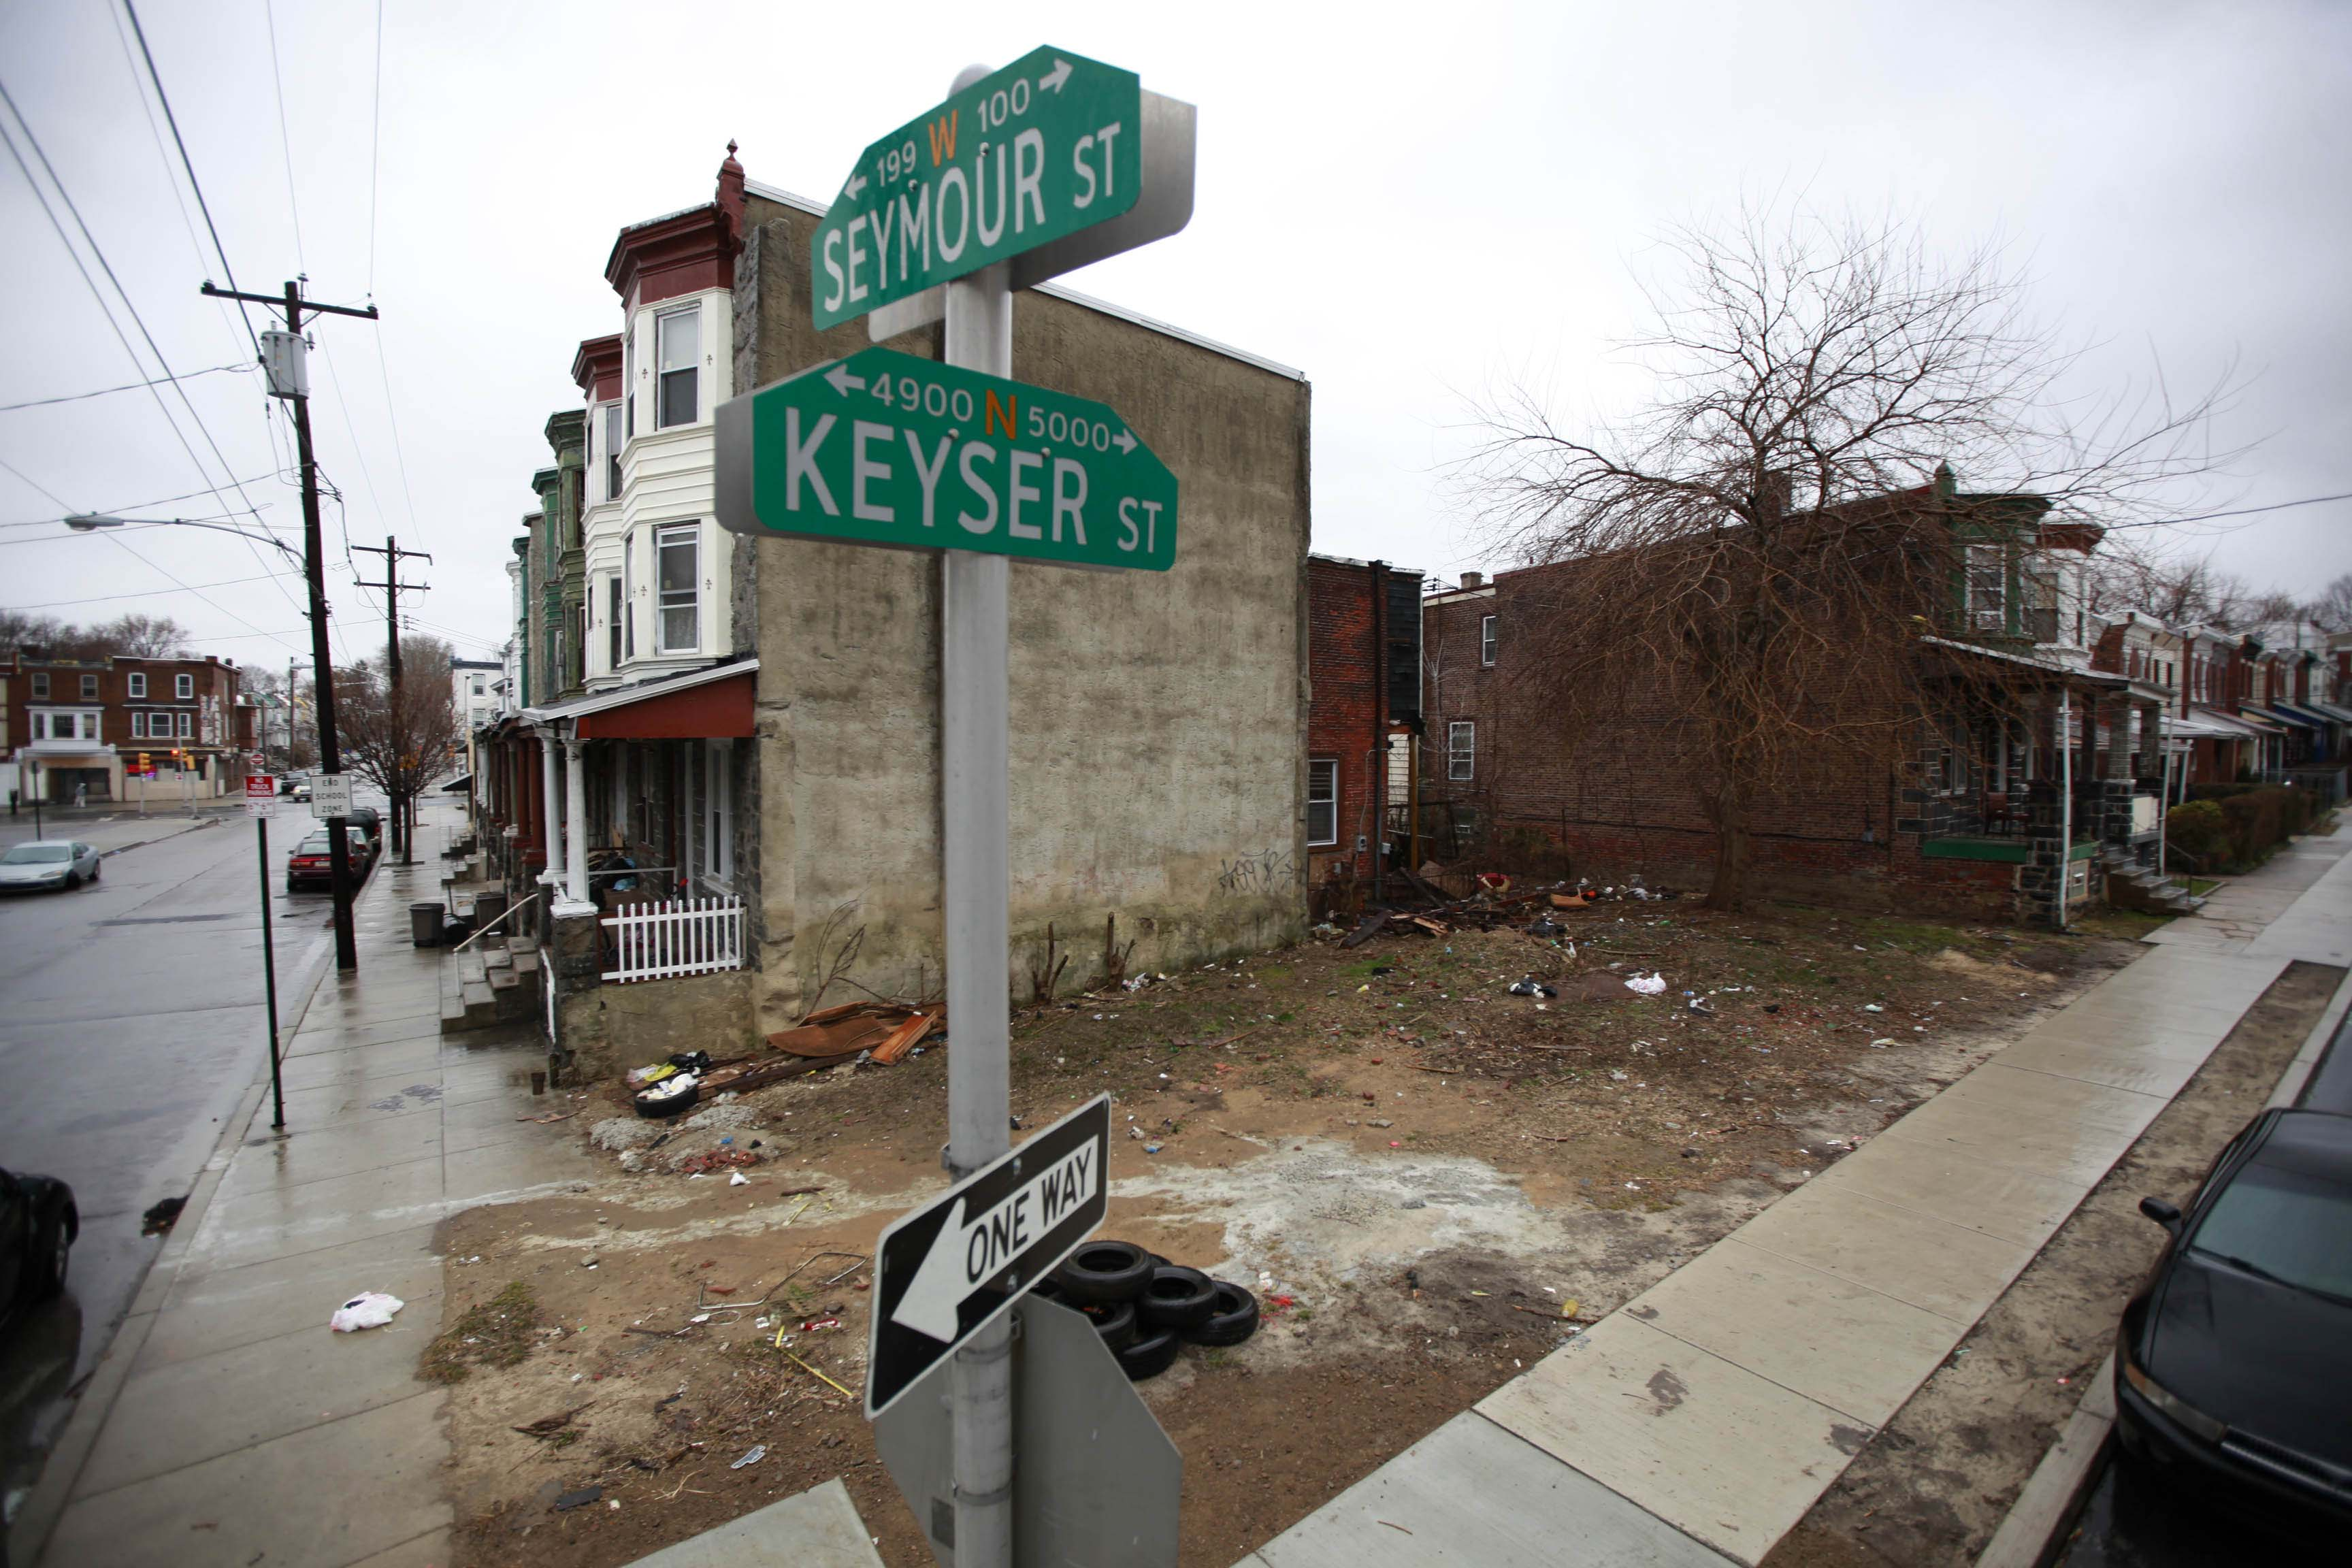 Seymour and Keyser streets is the Germantown section of Philadelphia March 6, 2013. ( David Swanson / Inquirer Staff Photographer)